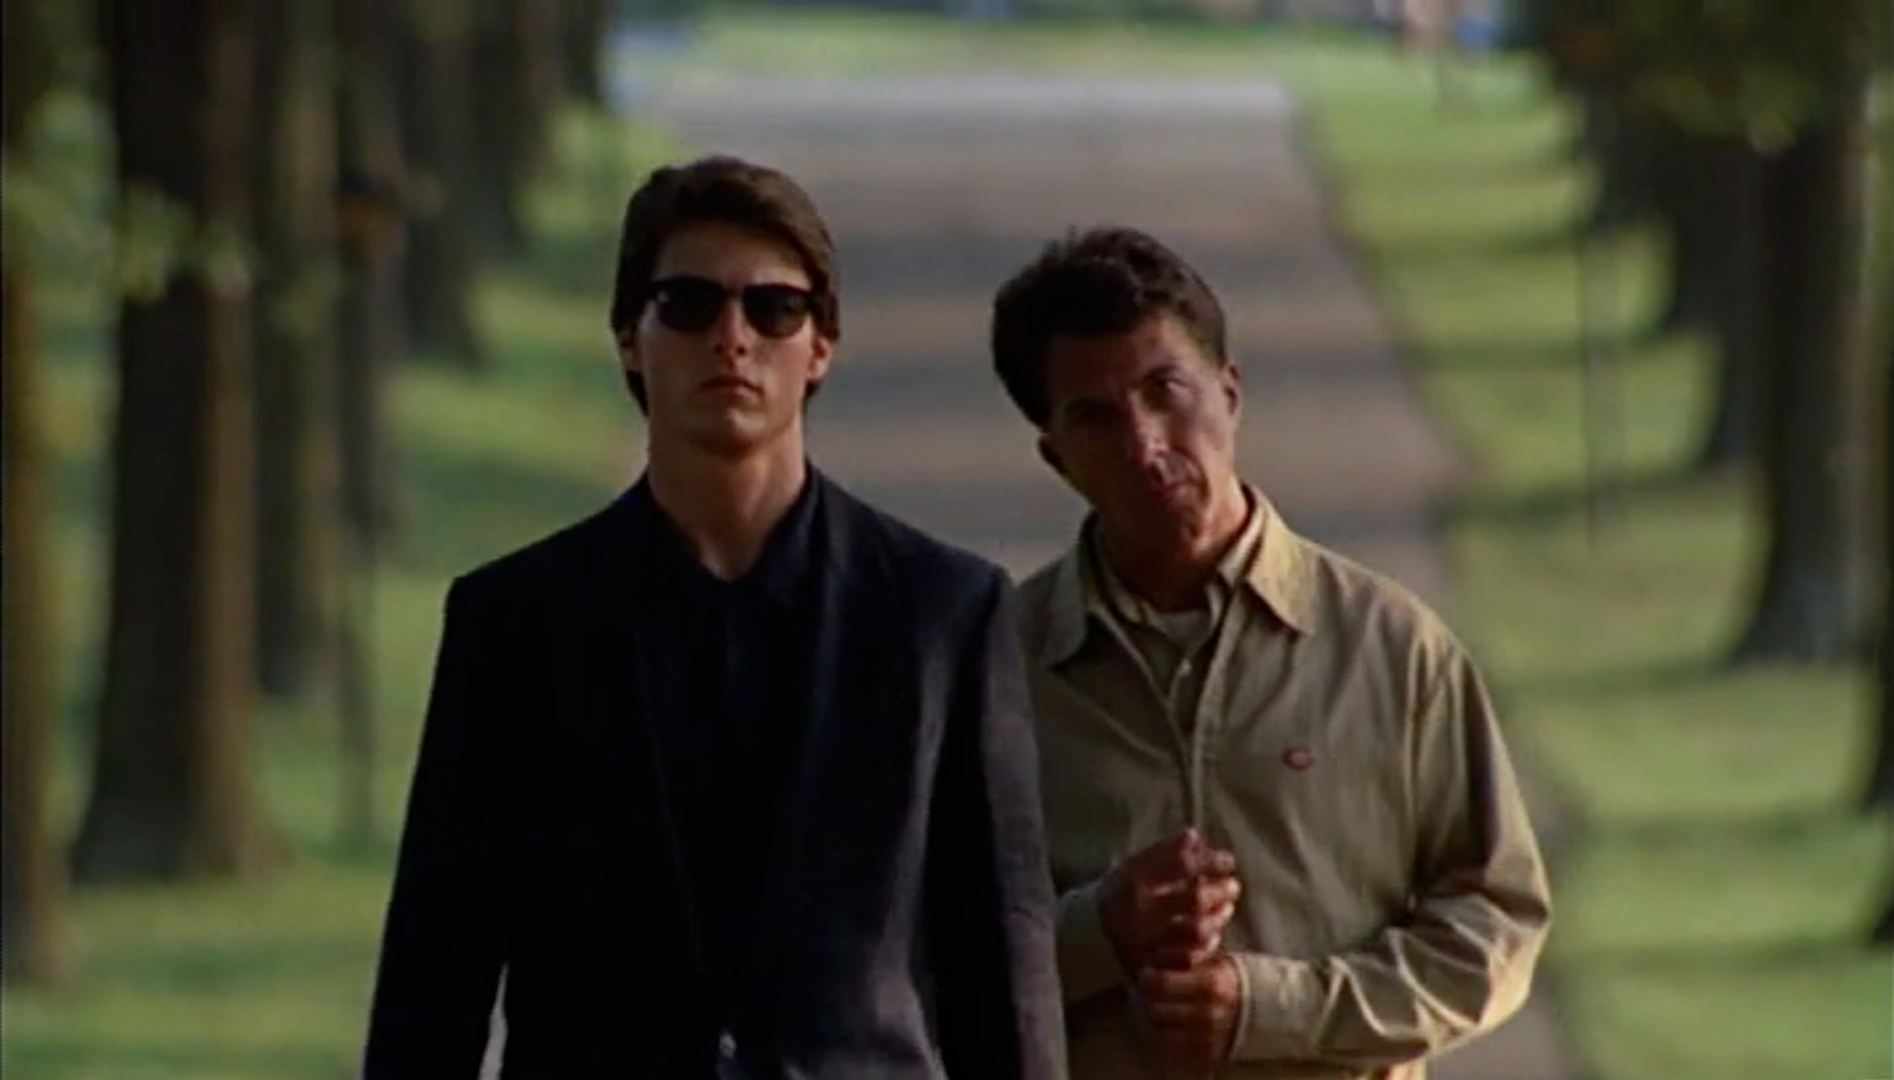 Filme Rayman with rain man • 1989 • dublado • cine mp4